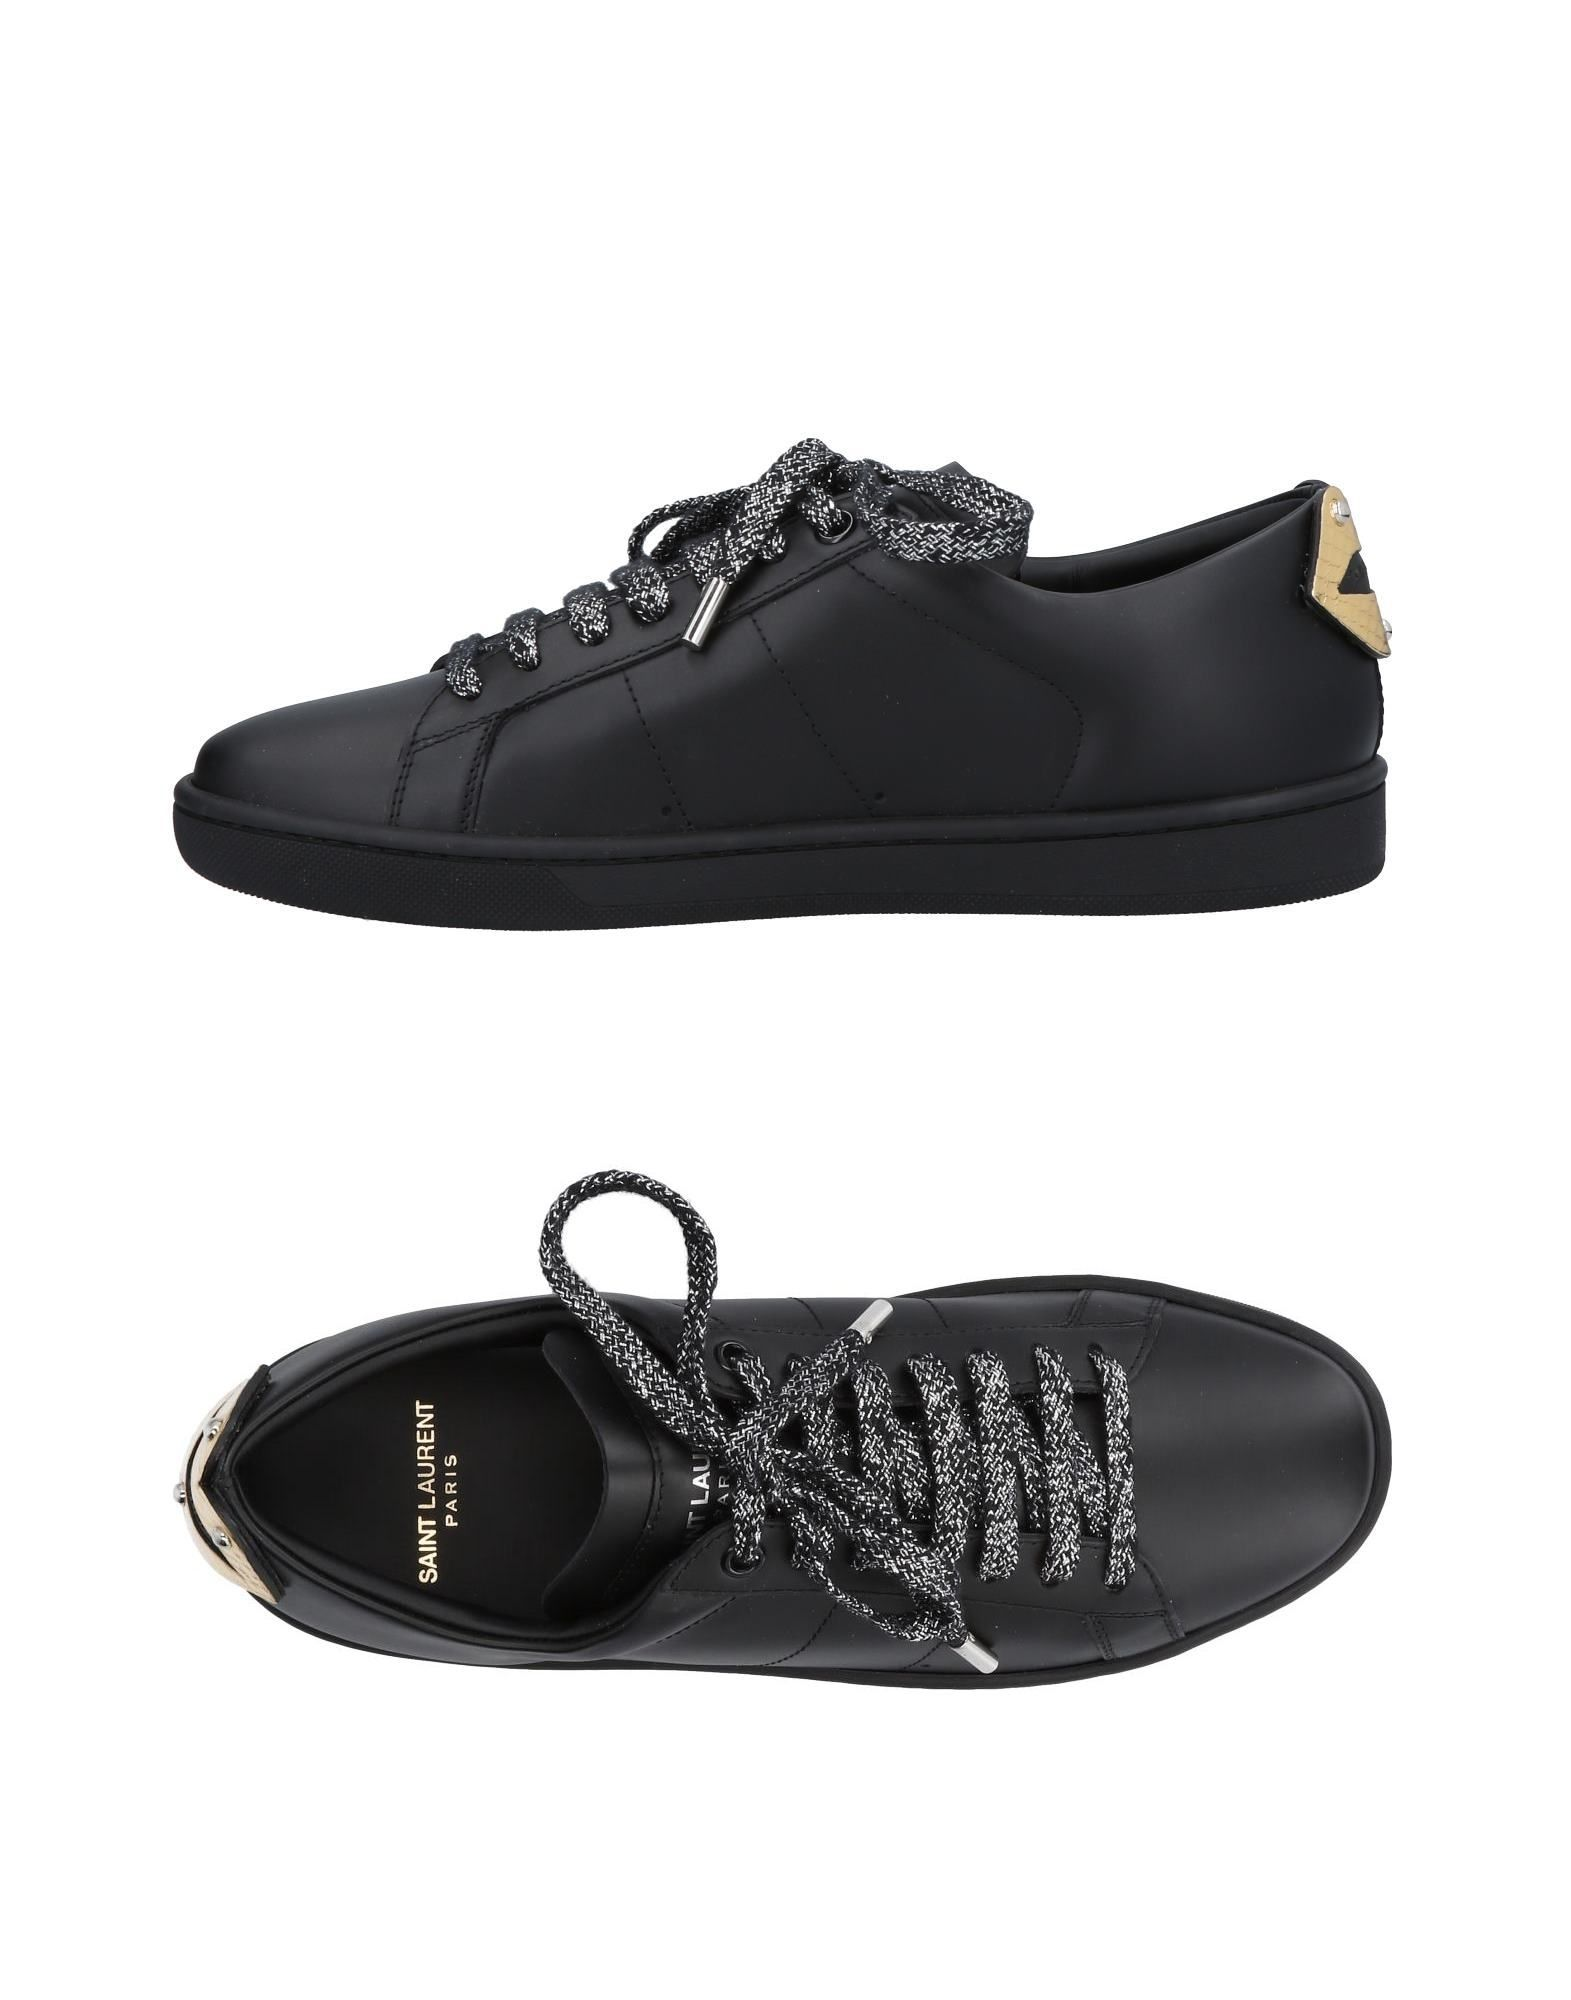 Saint Laurent Sneakers - Women Women Women Saint Laurent Sneakers online on  United Kingdom - 11465457TW eb85c9